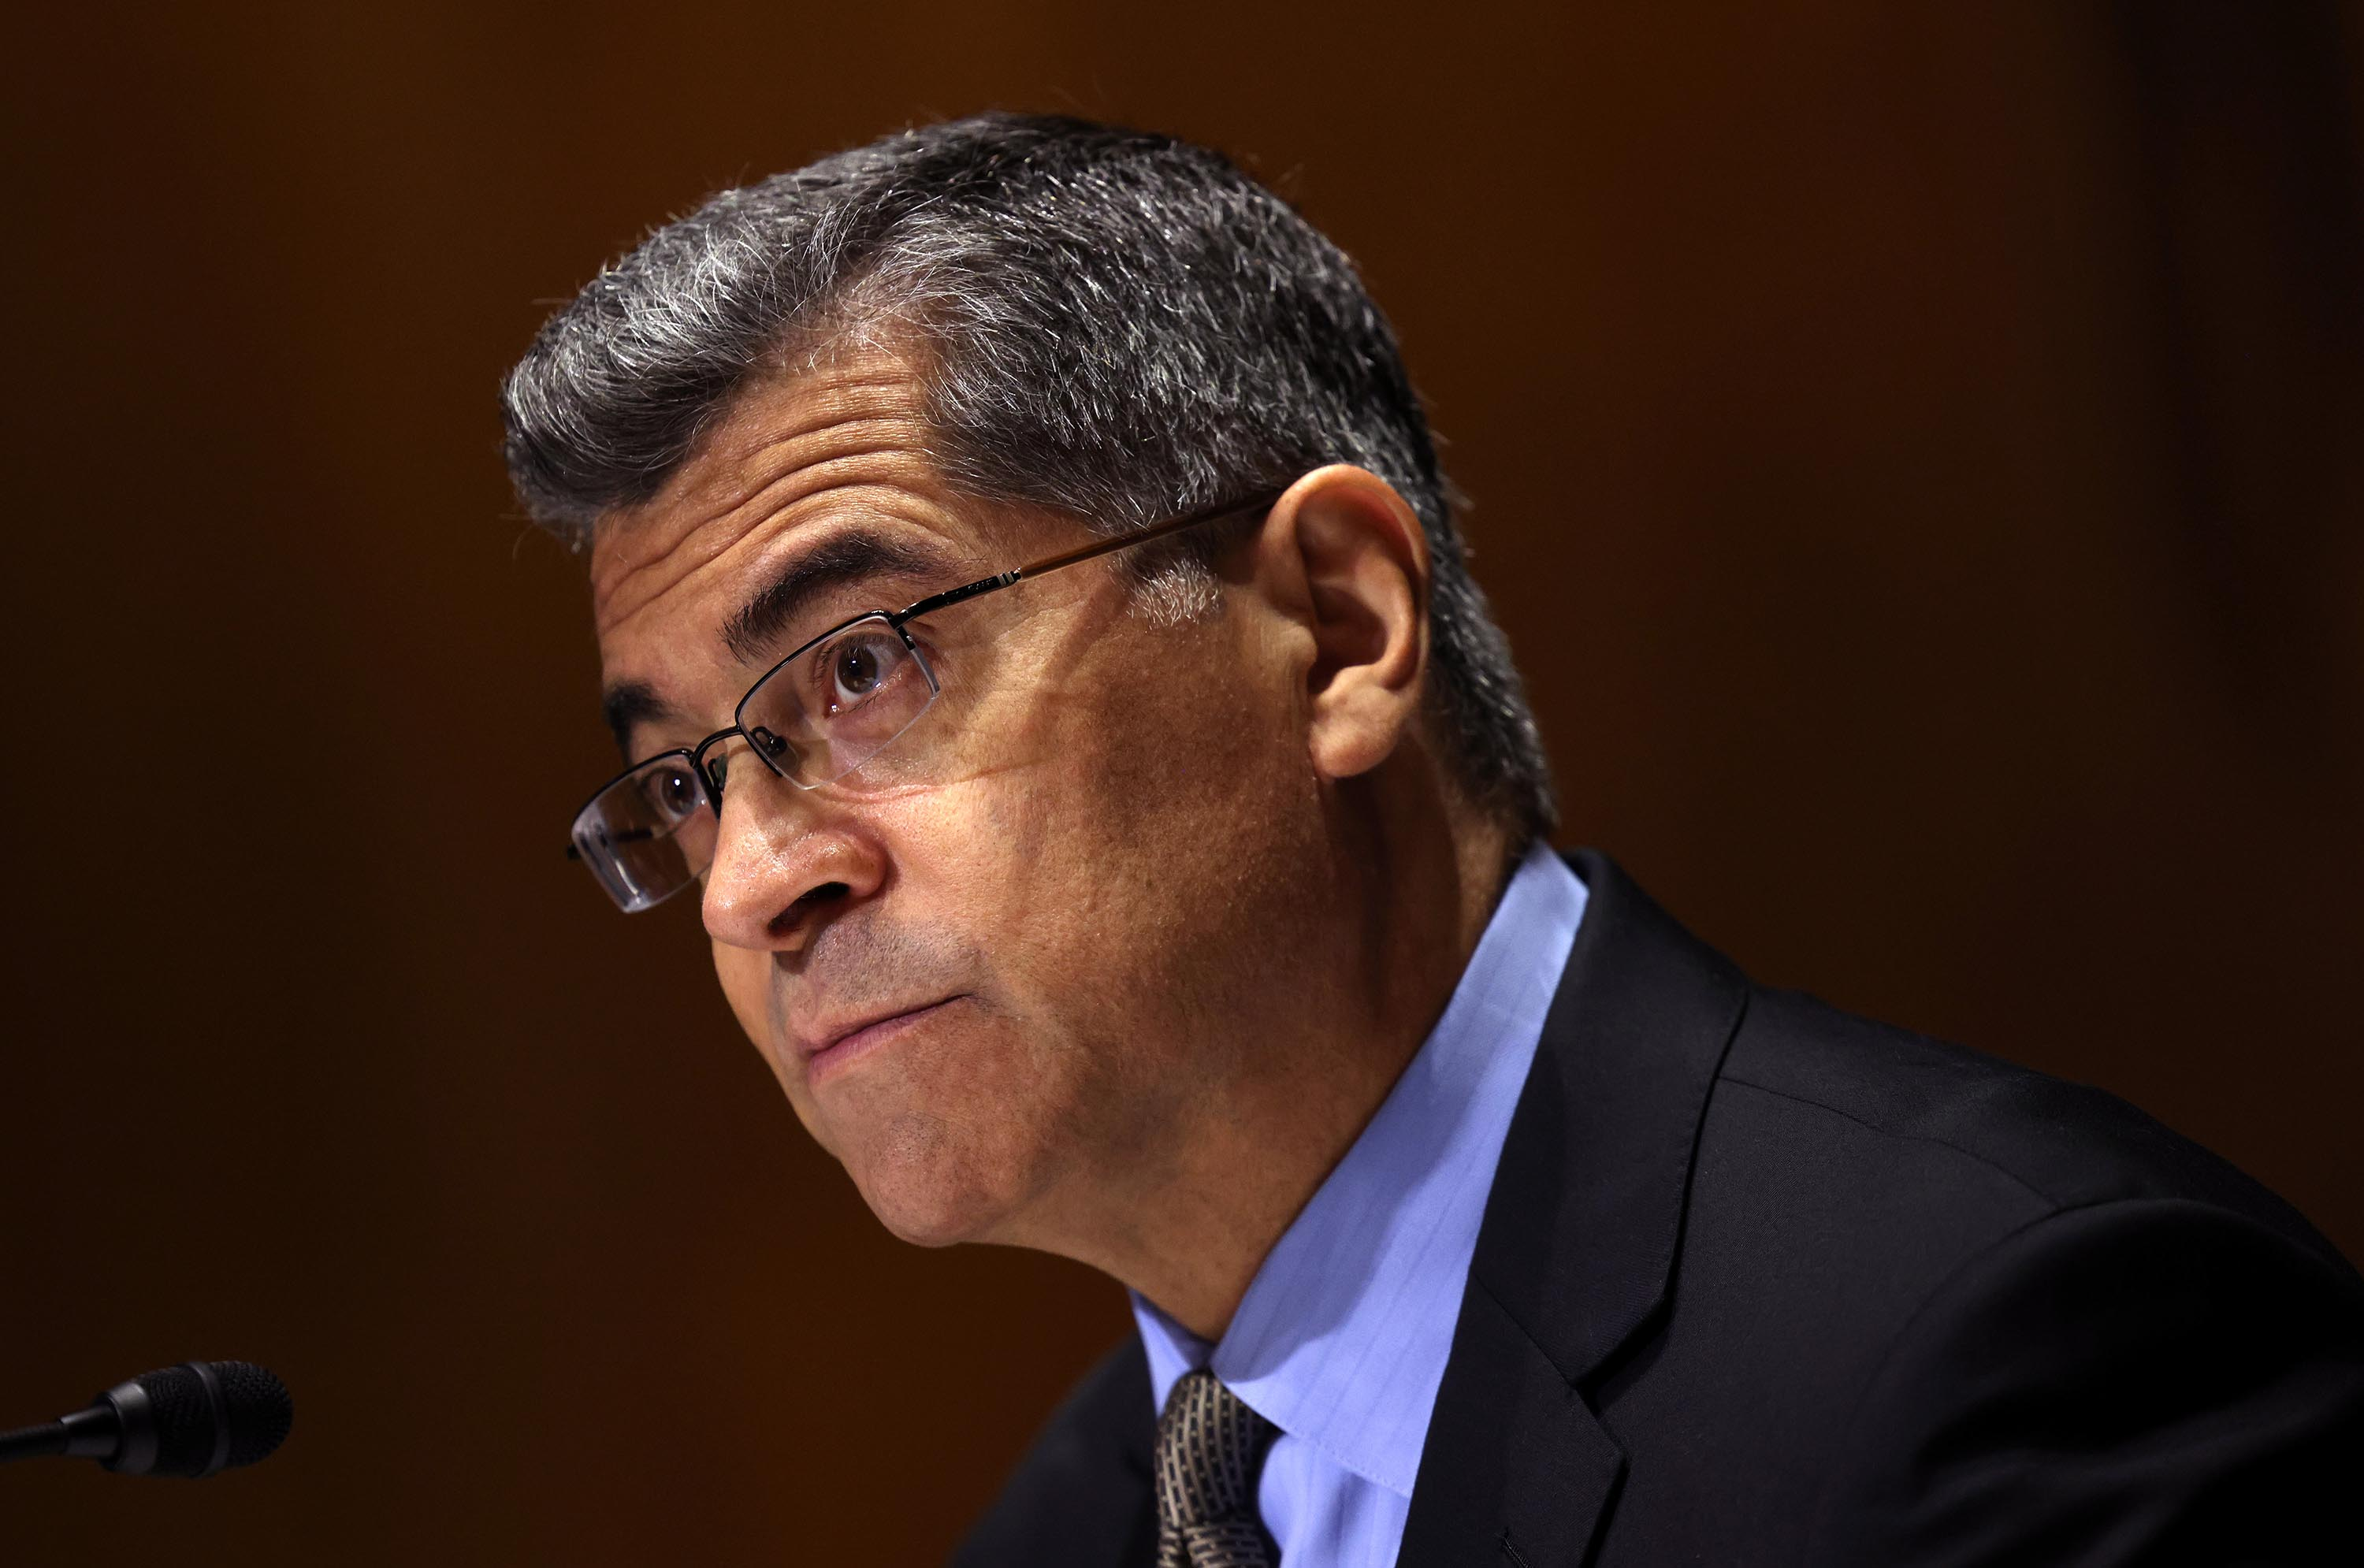 Health and Human Services Secretary Xavier Becerra testifies during a Senate Finance Committee hearing on June 10, 2021 in Washington, DC.